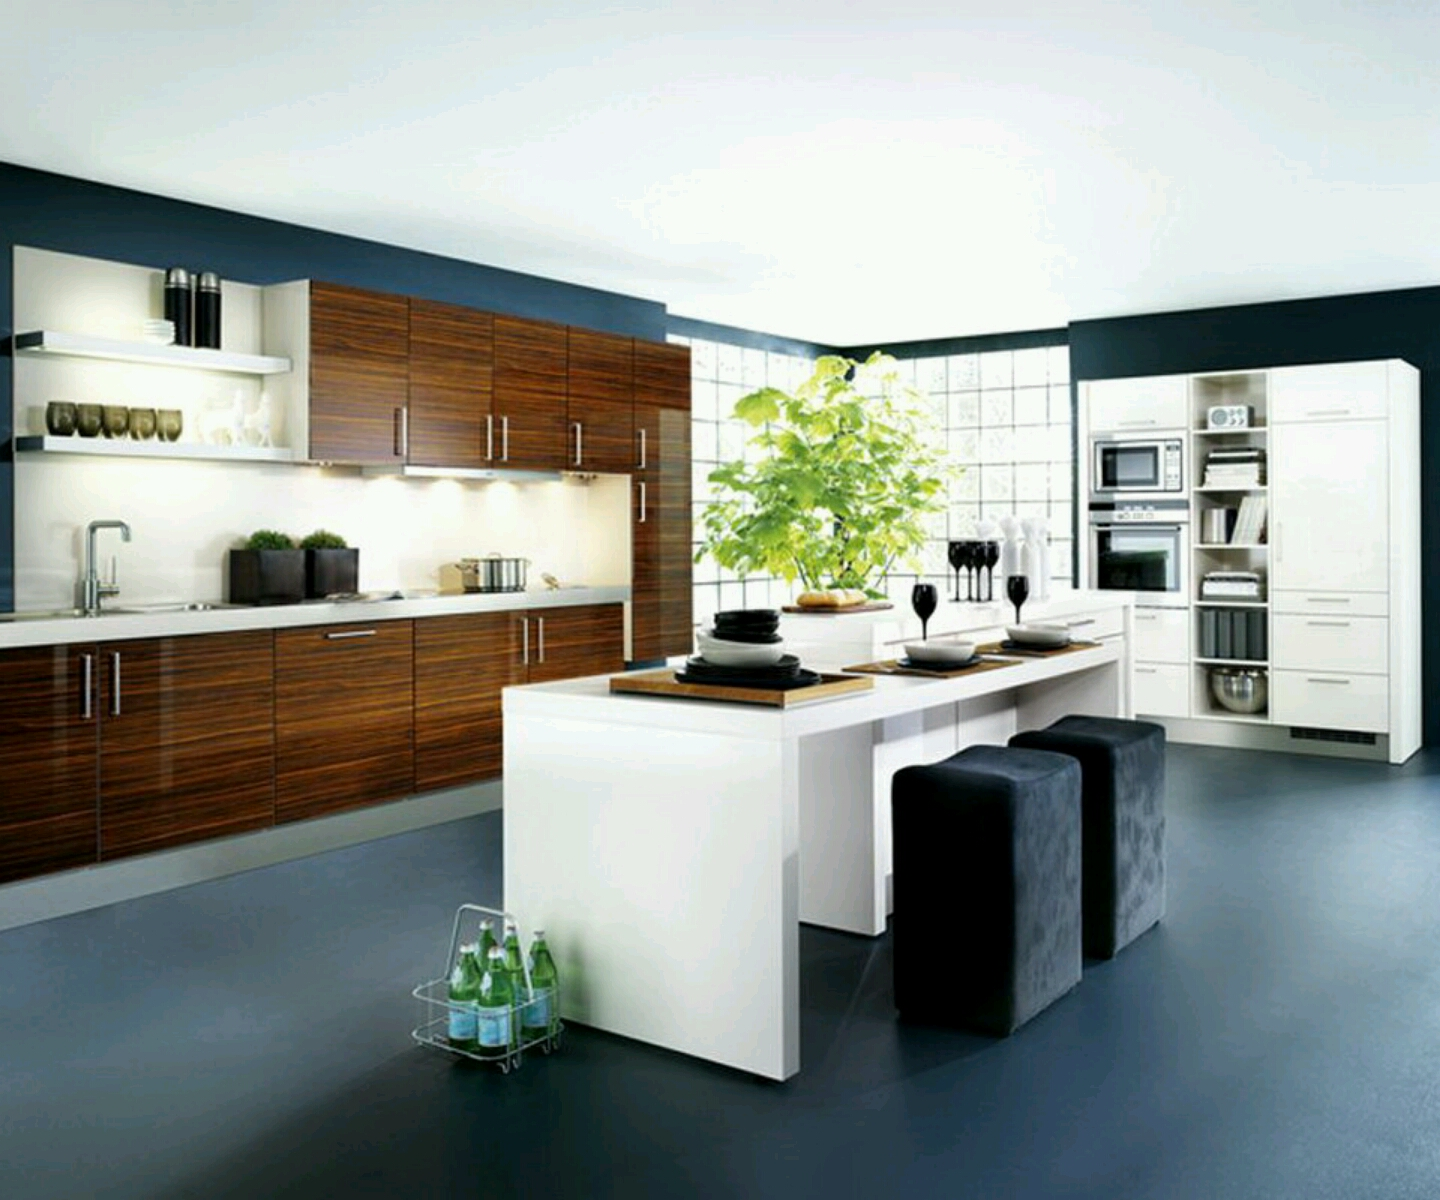 New home designs latest kitchen cabinets designs modern for Modern kitchen